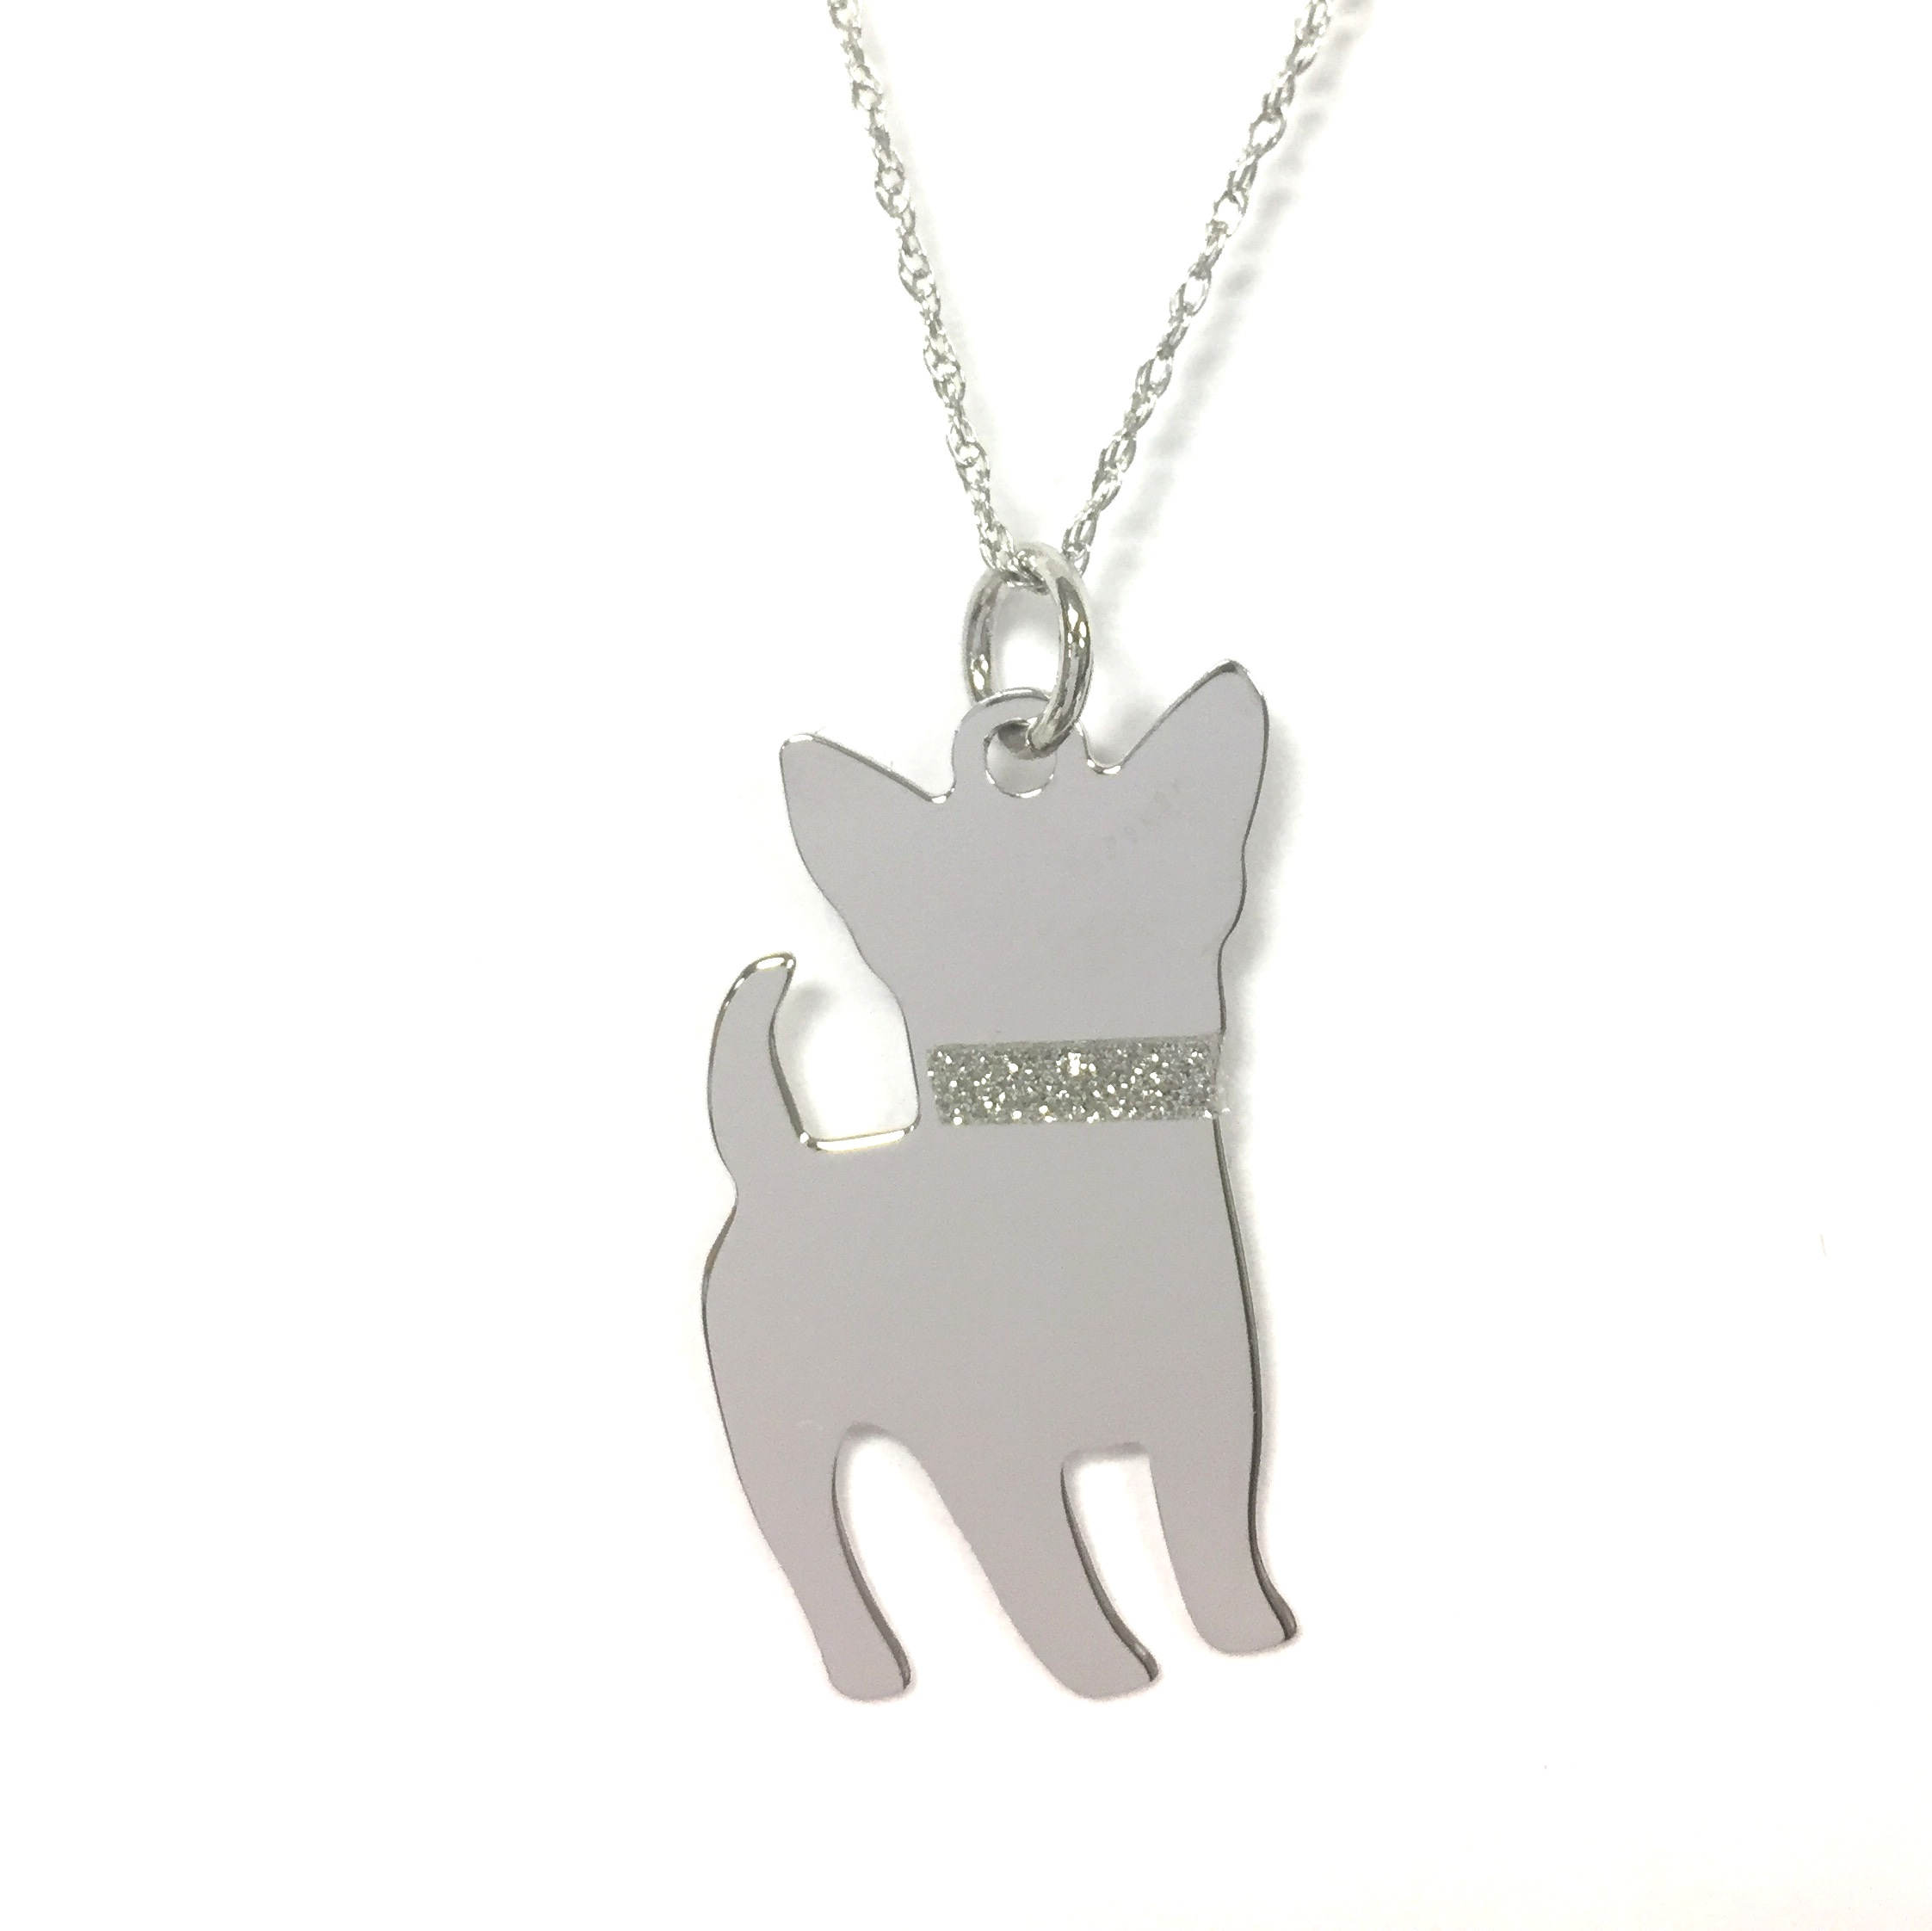 silver we chain bone dog dogs trust dogeared charm in necklace sterling on